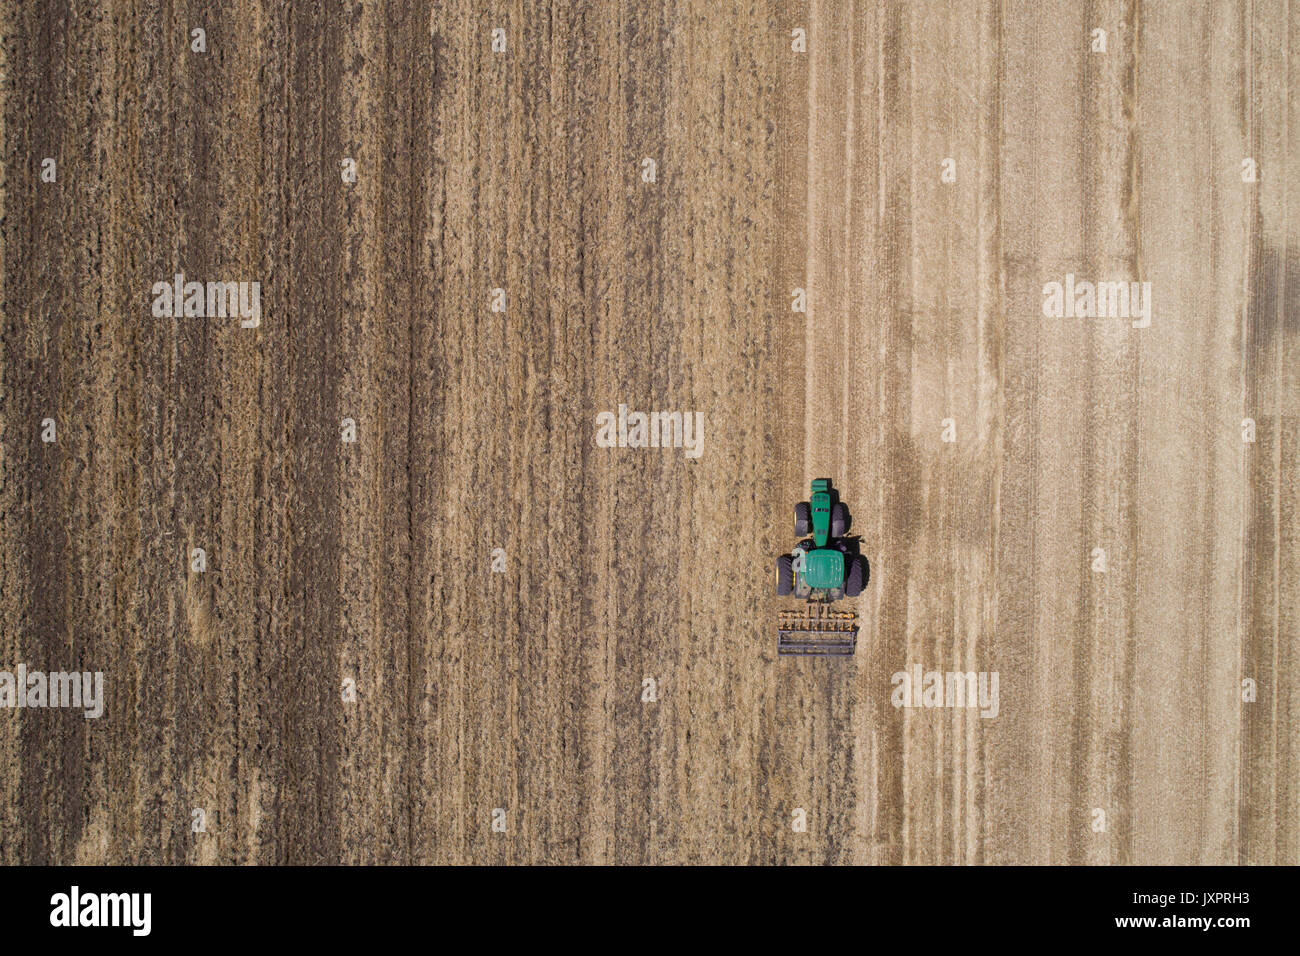 Tractor working in golden wheat field after harvest. Aerial image of agricultural seasonal works - Stock Image